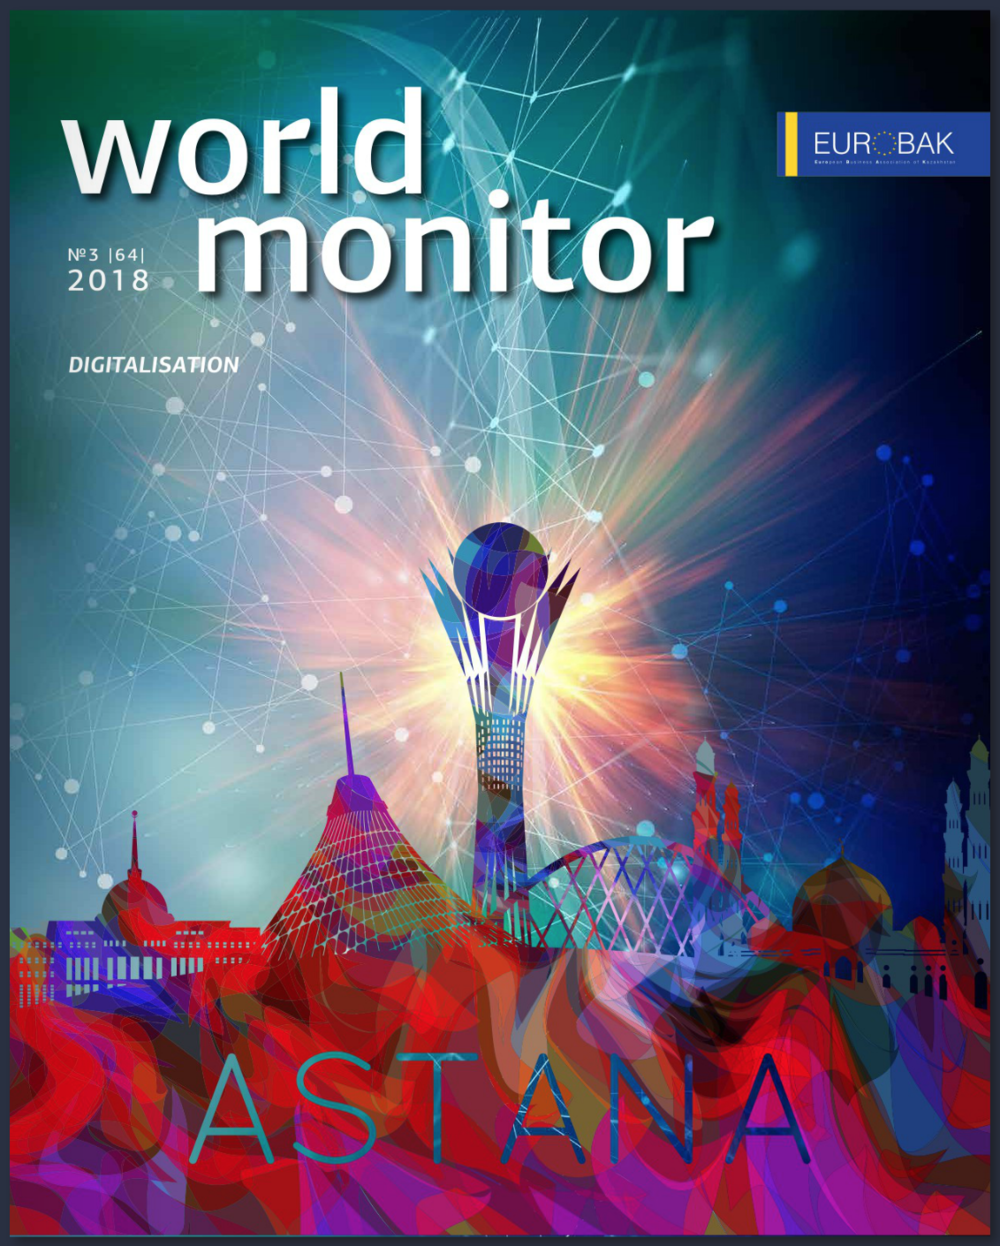 WORLD MONITOR by EUROBAK